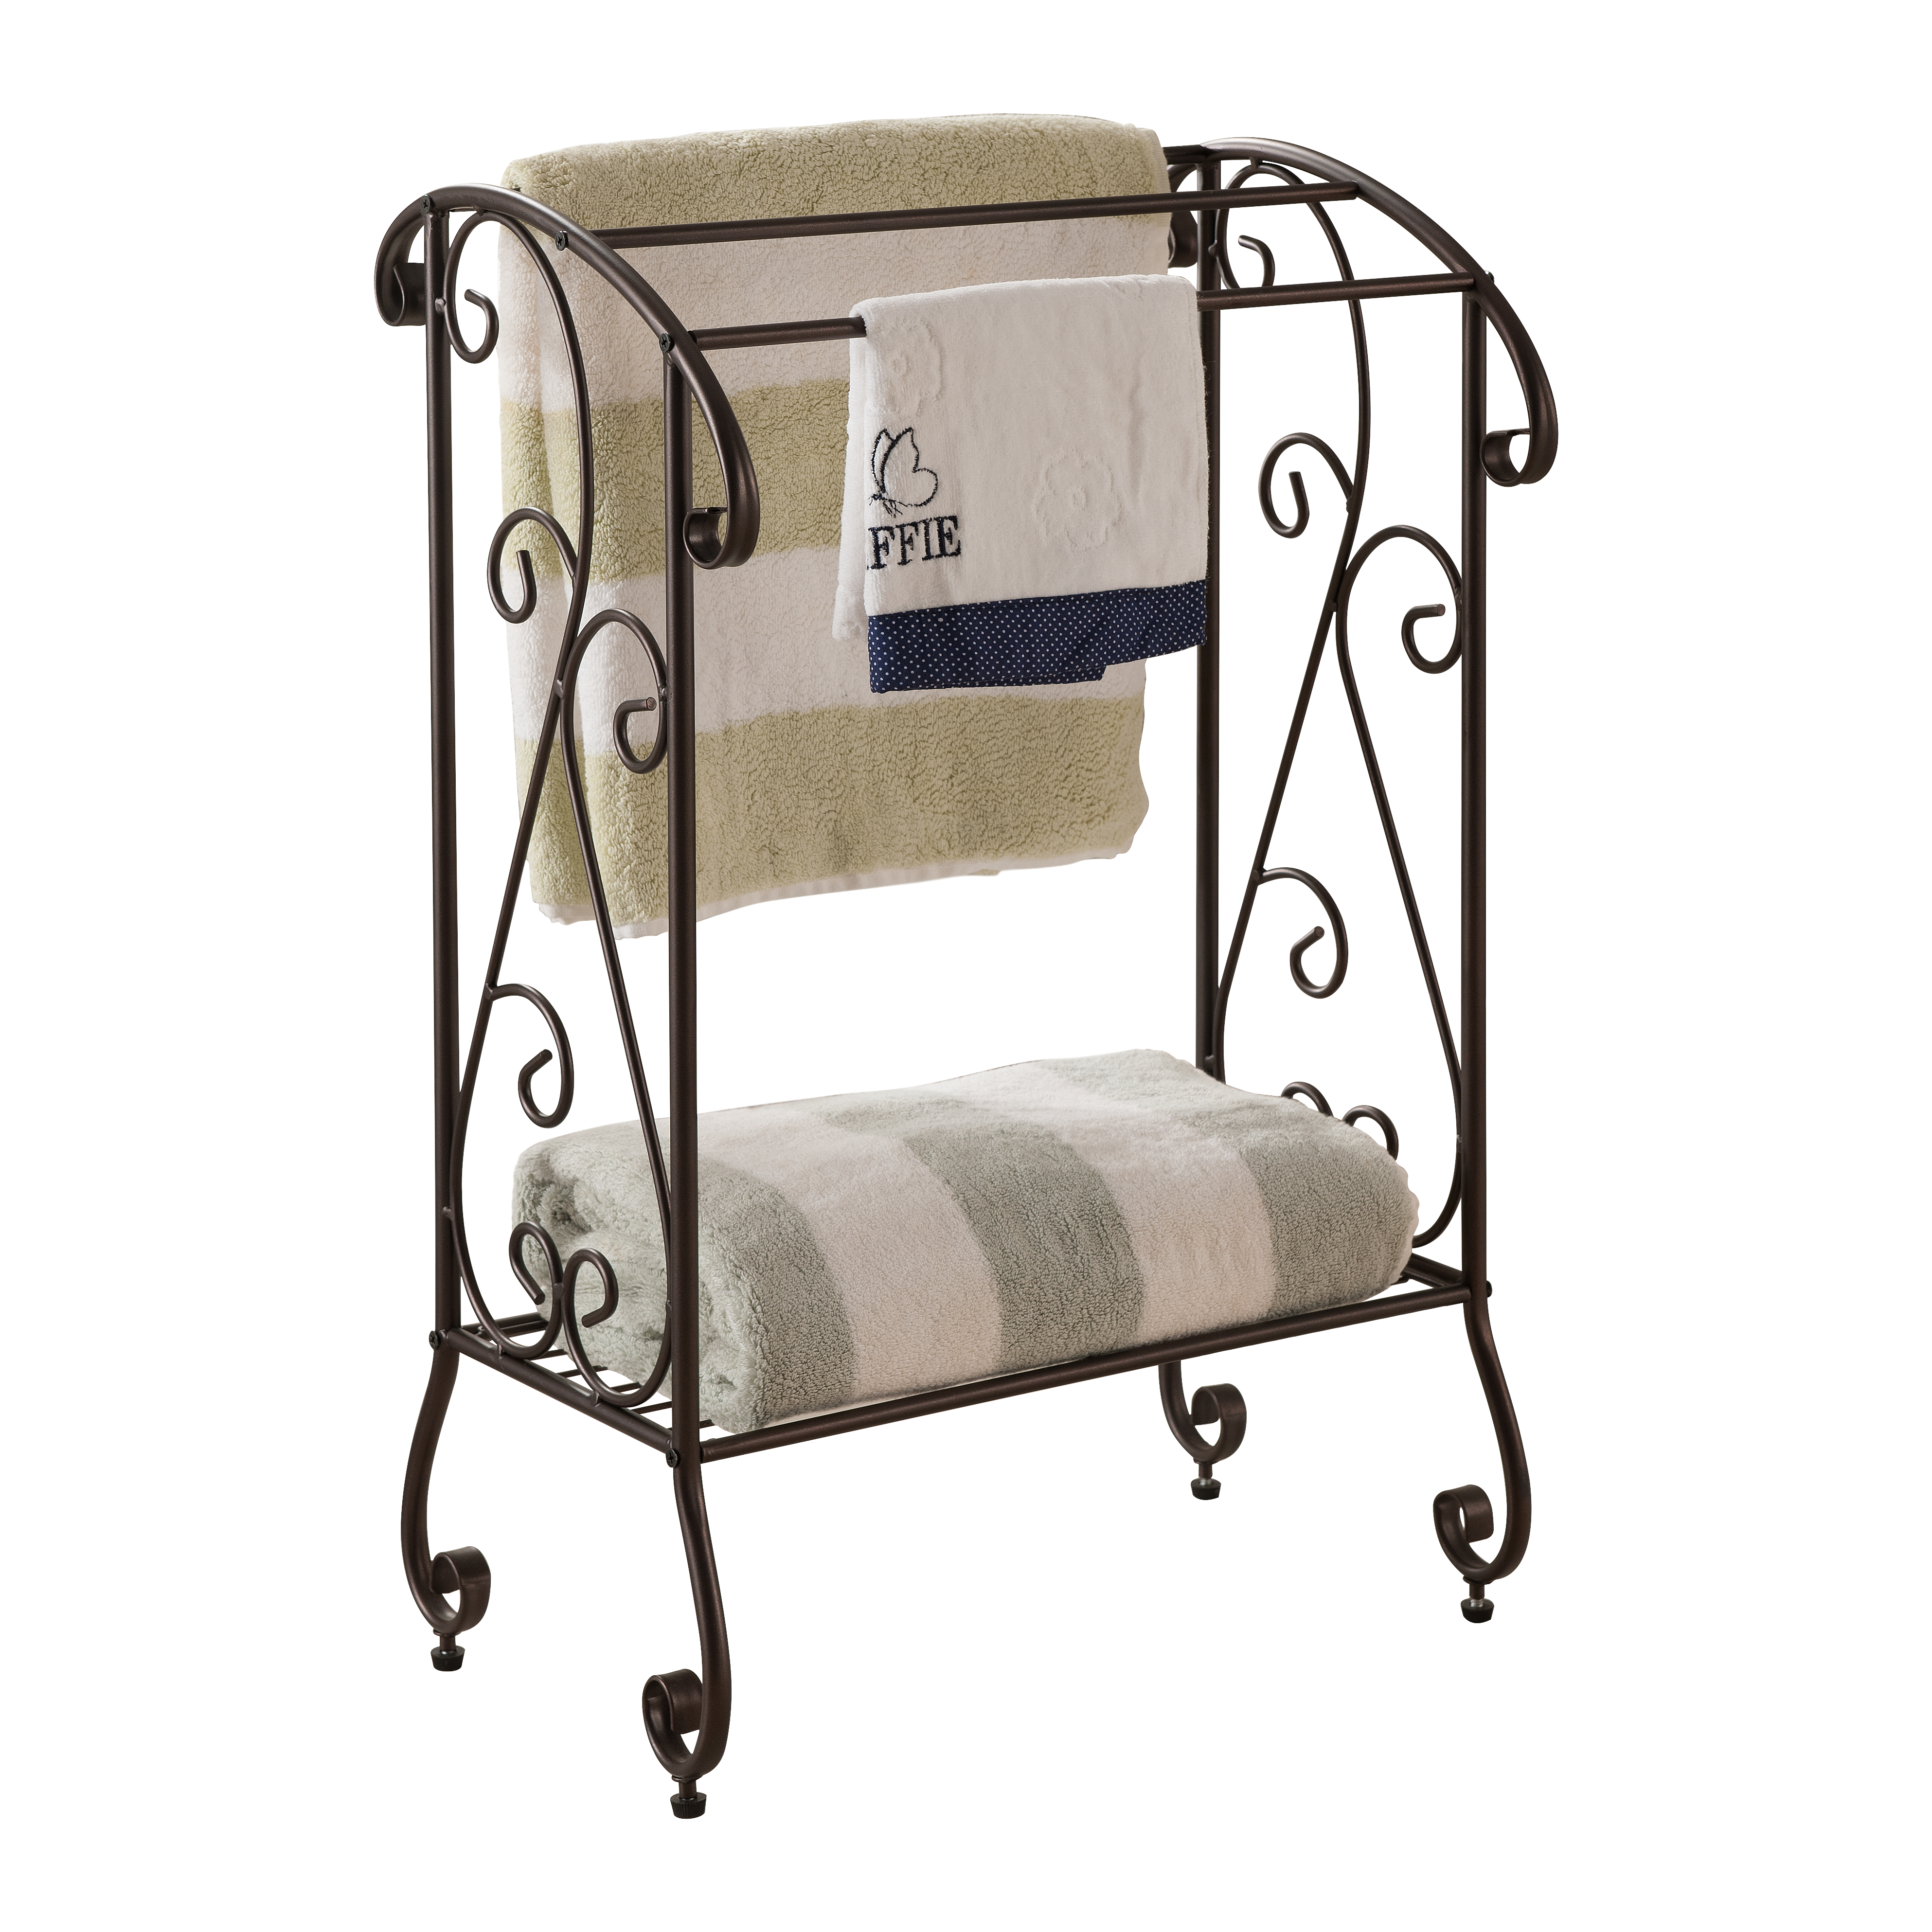 Pilaster Designs Metal Free Standing Towel Rack Stand With Shelf